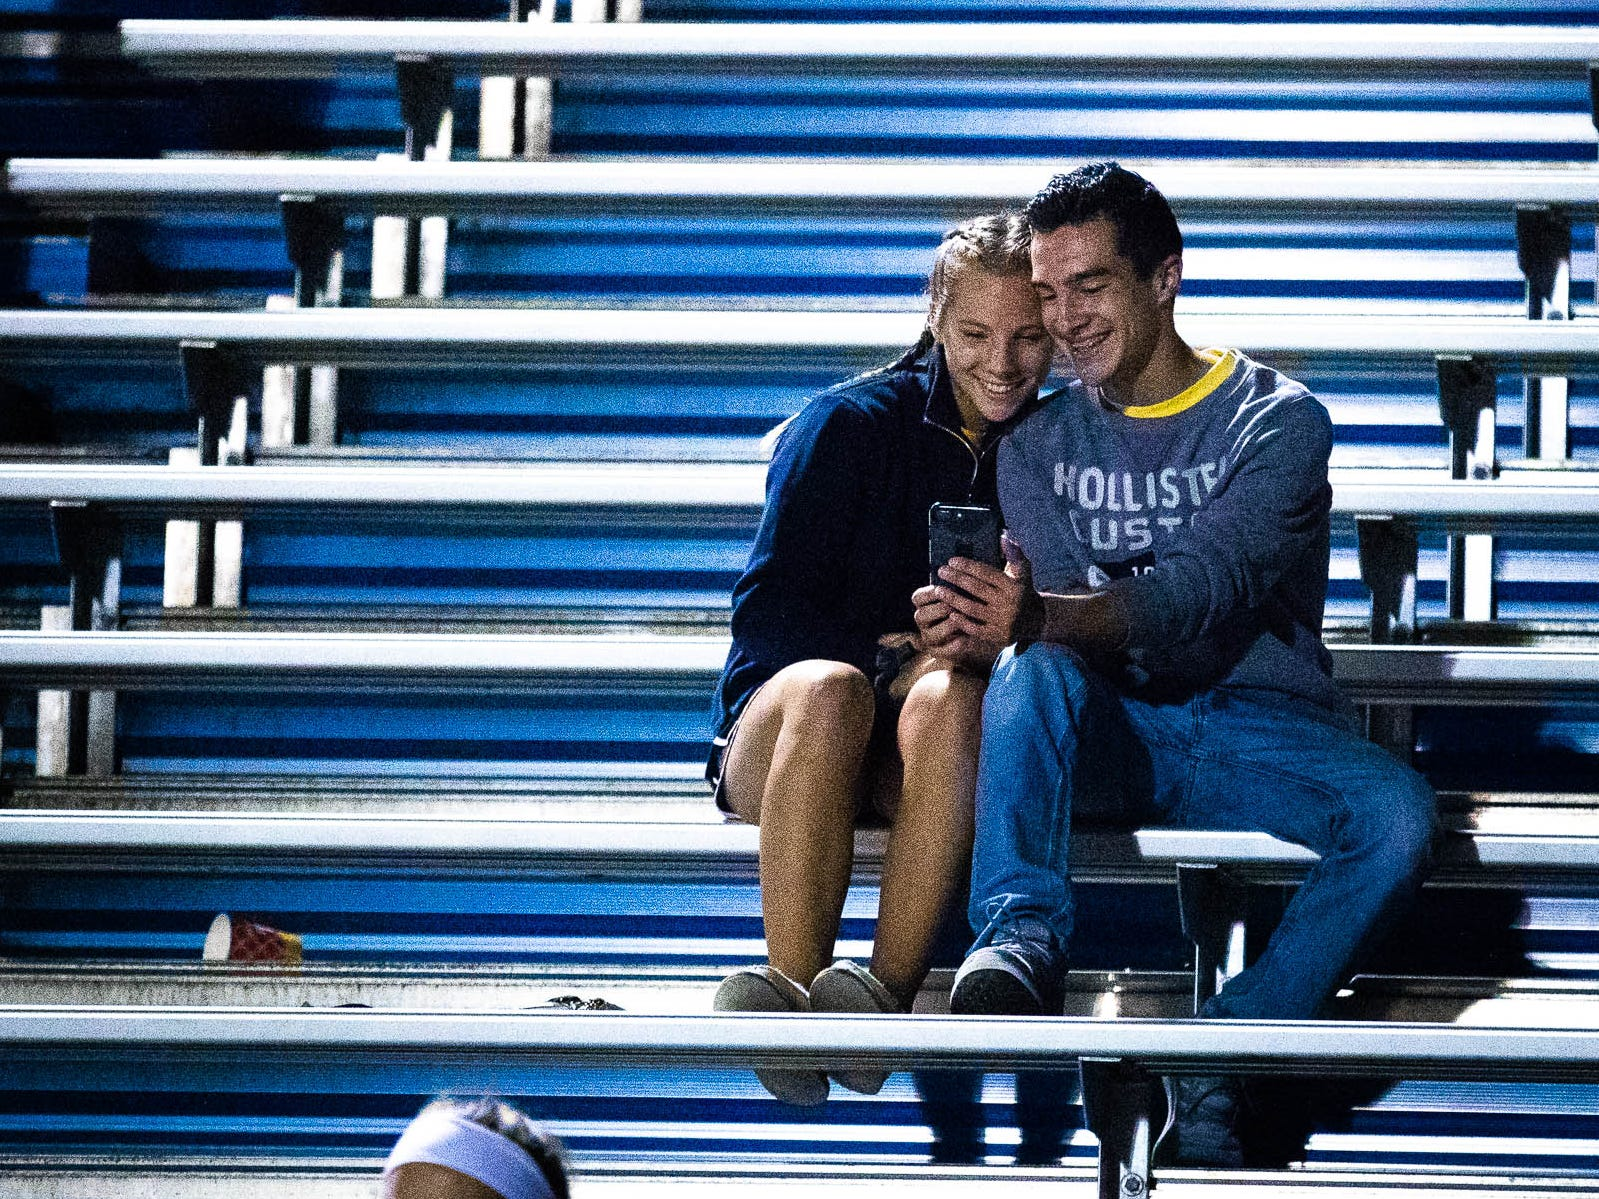 Two Spring Grove fans embrace in the stands during a football game between York High and Spring Grove, Friday, Sept. 21, 2018, in Spring Grove. The York High Bearcats beat the Spring Grove Rockets 55-14.